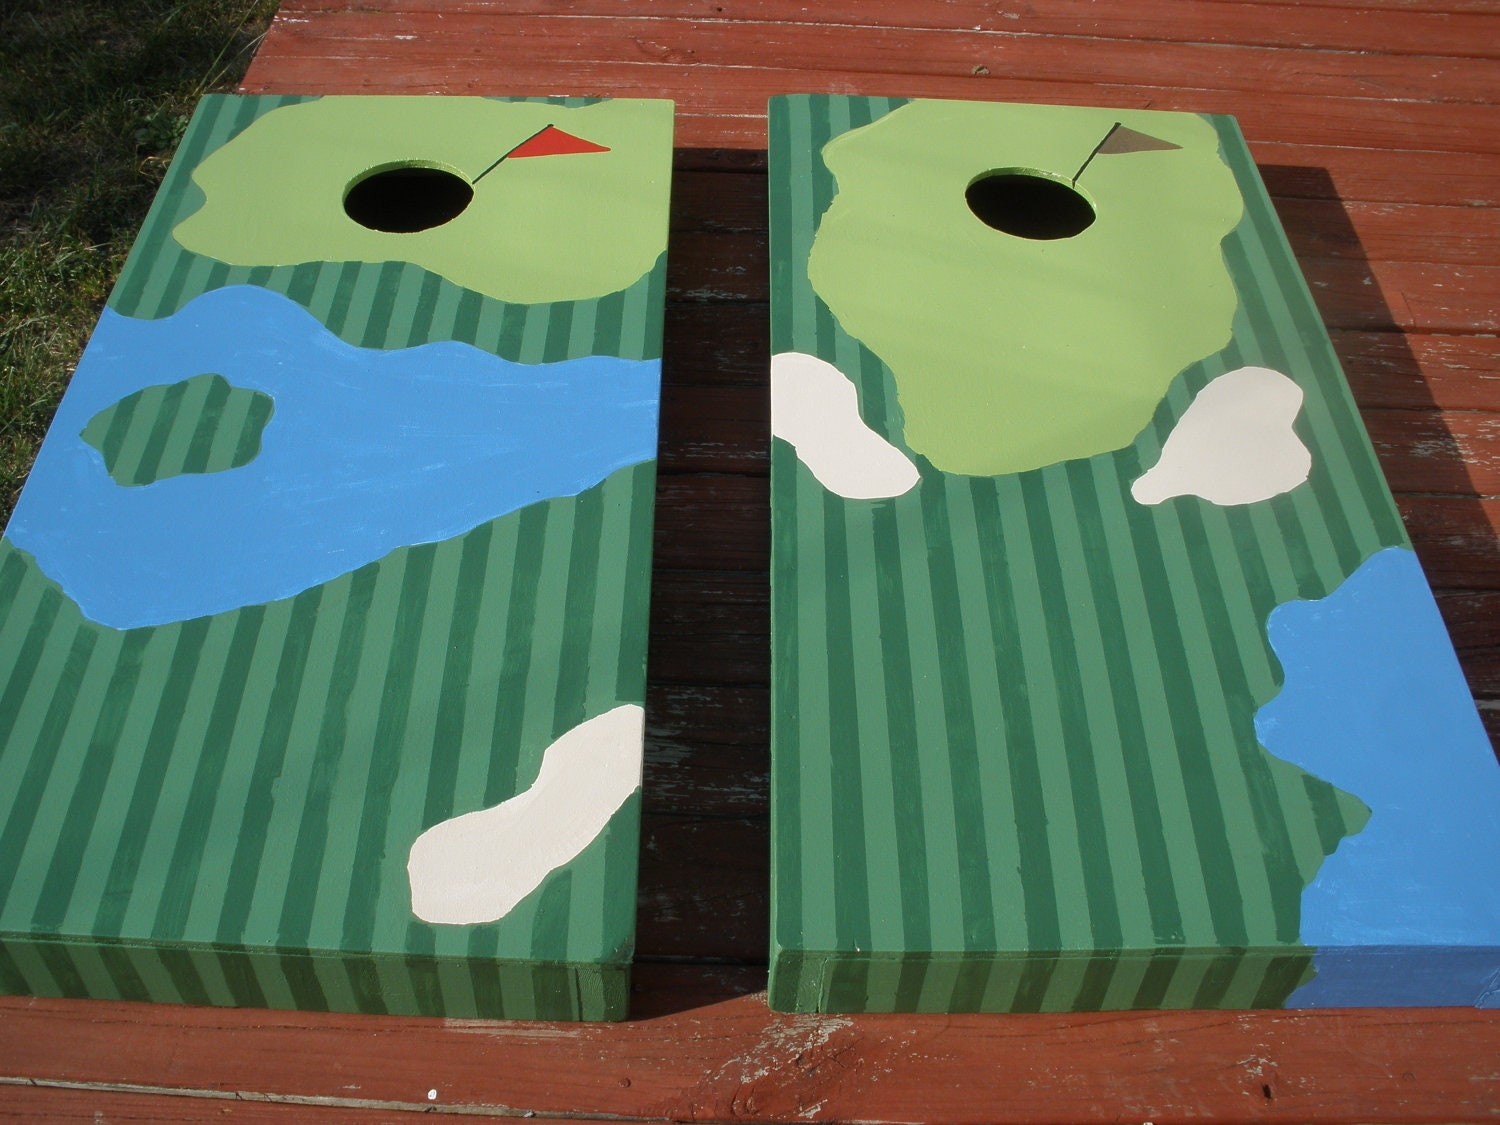 us vintage flag cornhole - Cornhole Design Ideas